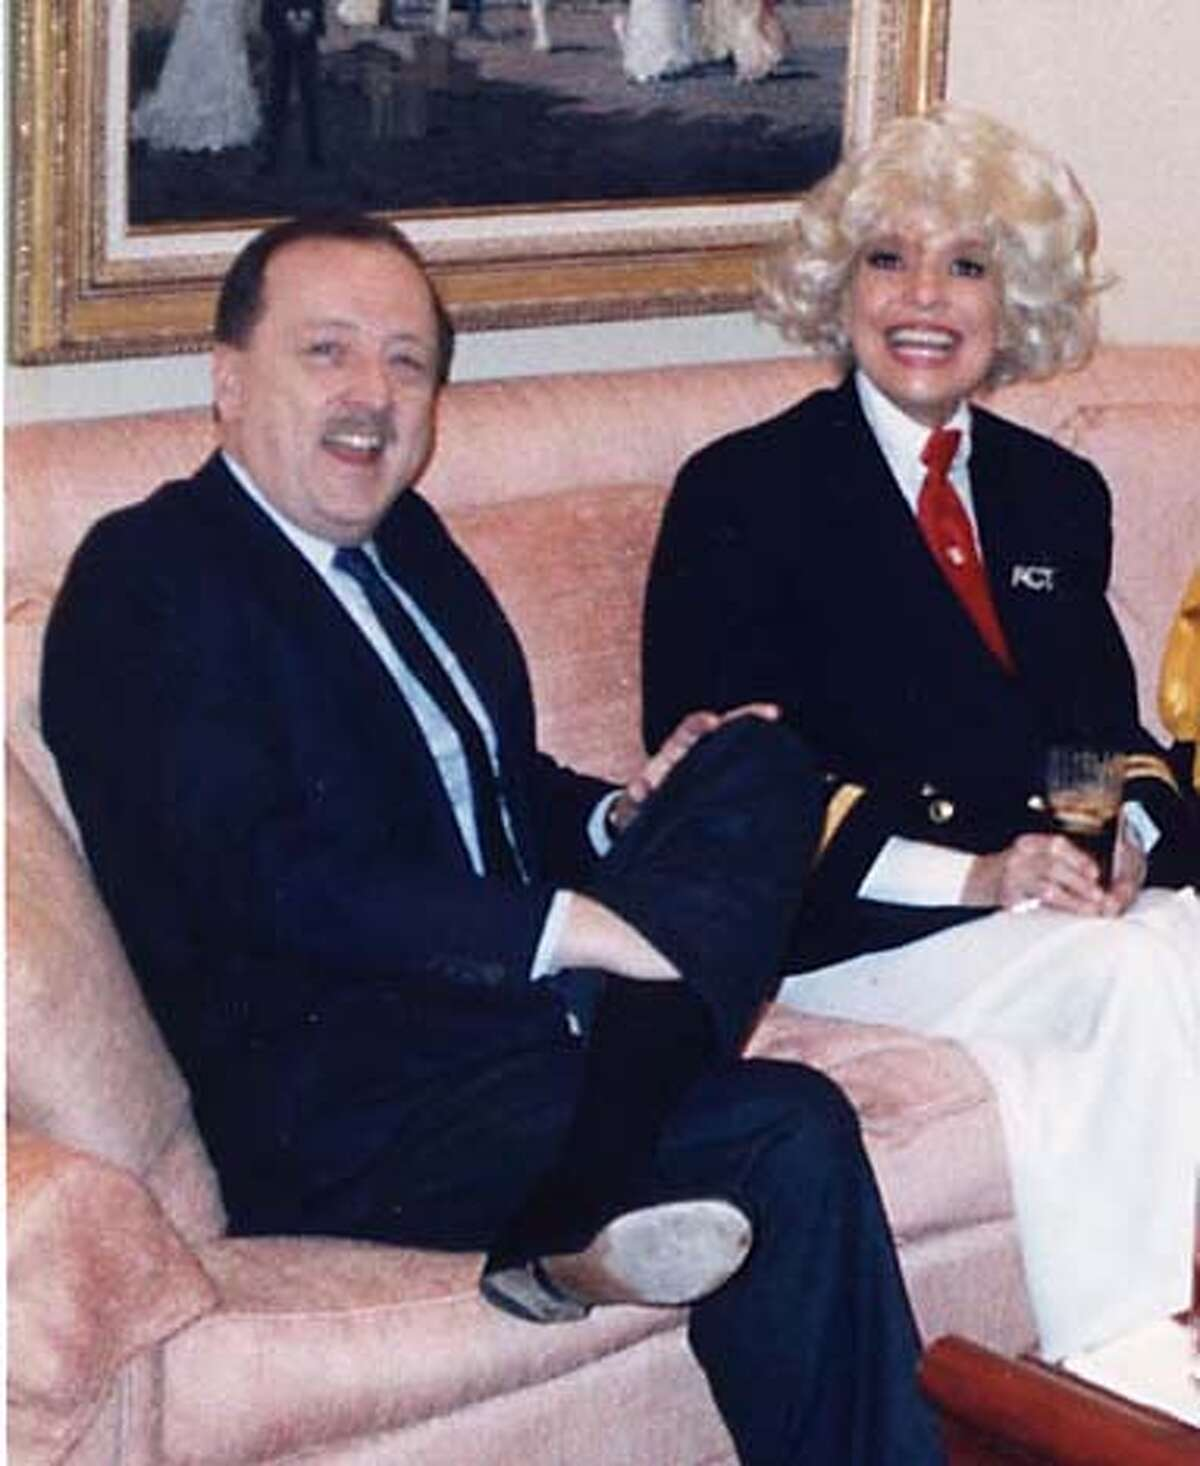 Credit: Courtesy: Wilkes Bashford wilkes and Carol Channing in the late 80s at a luncheon held at the Sutter Street store